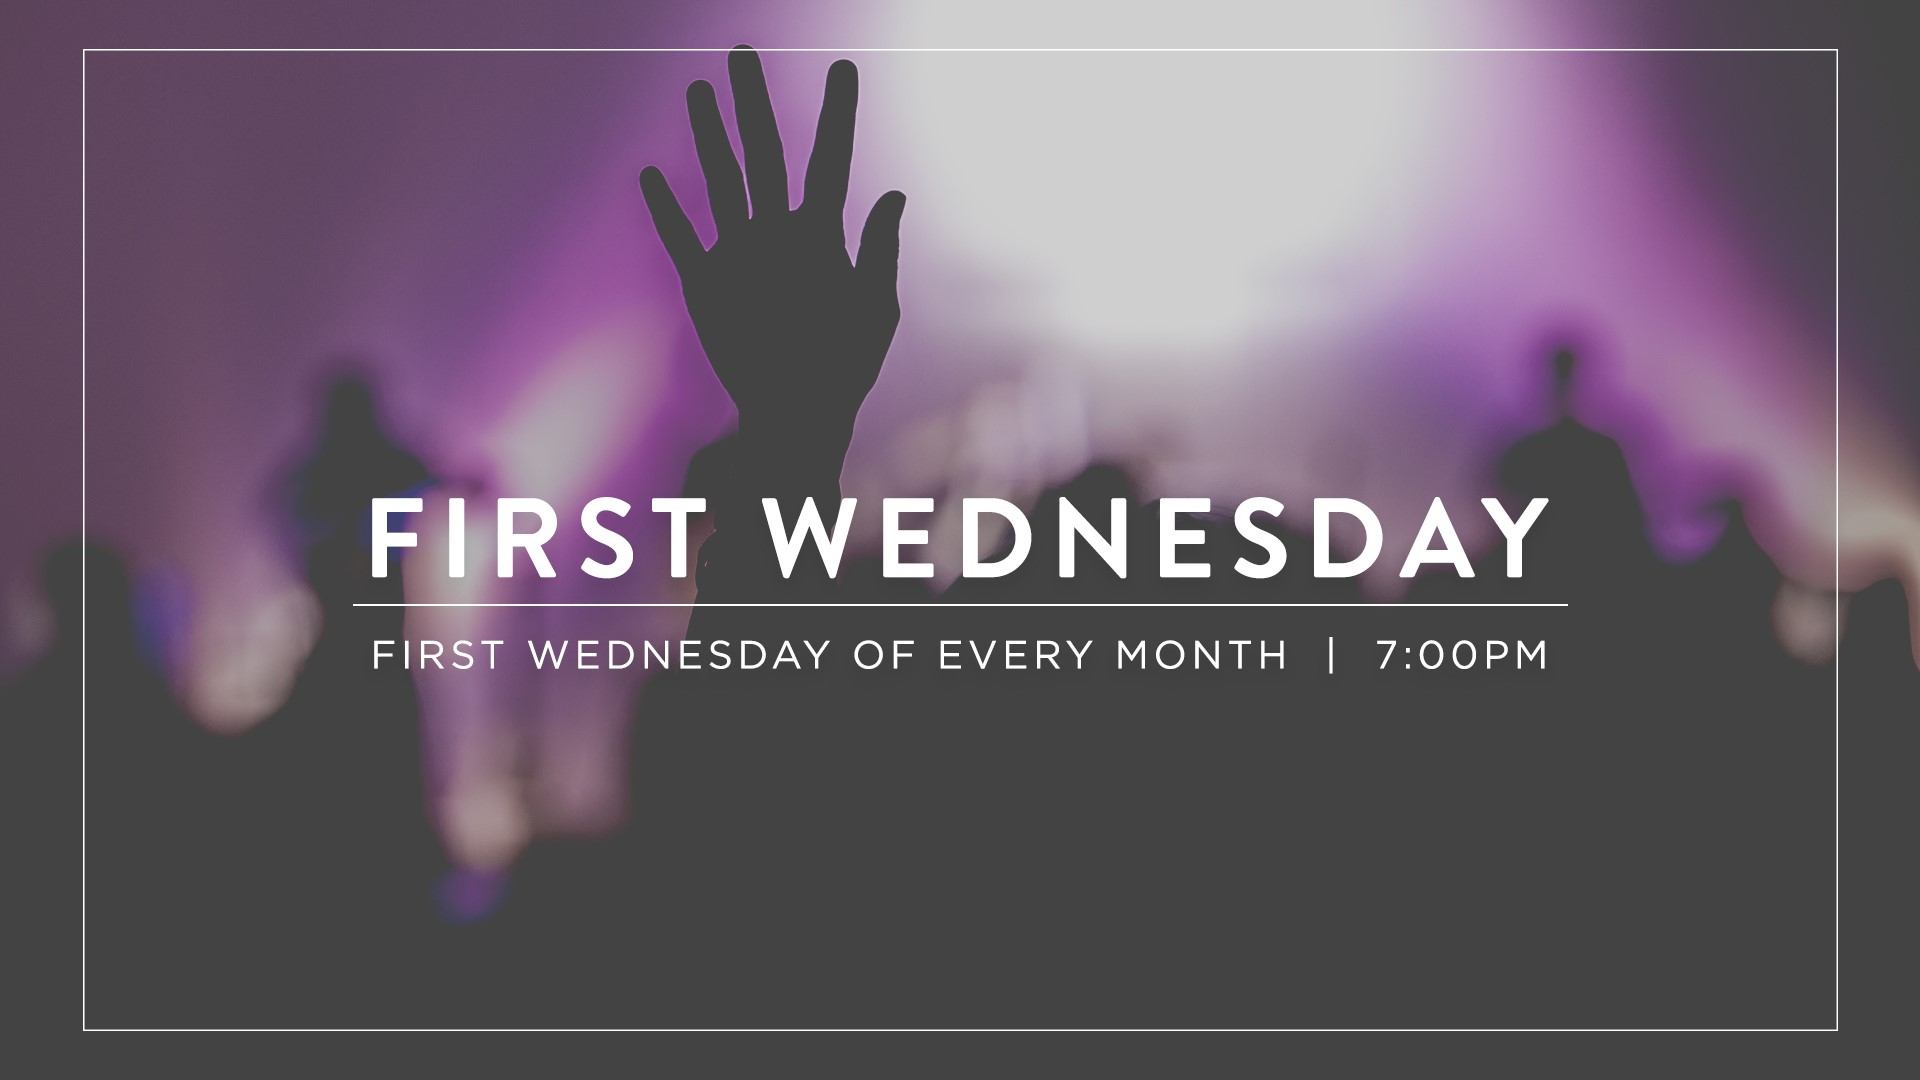 first wednesday image